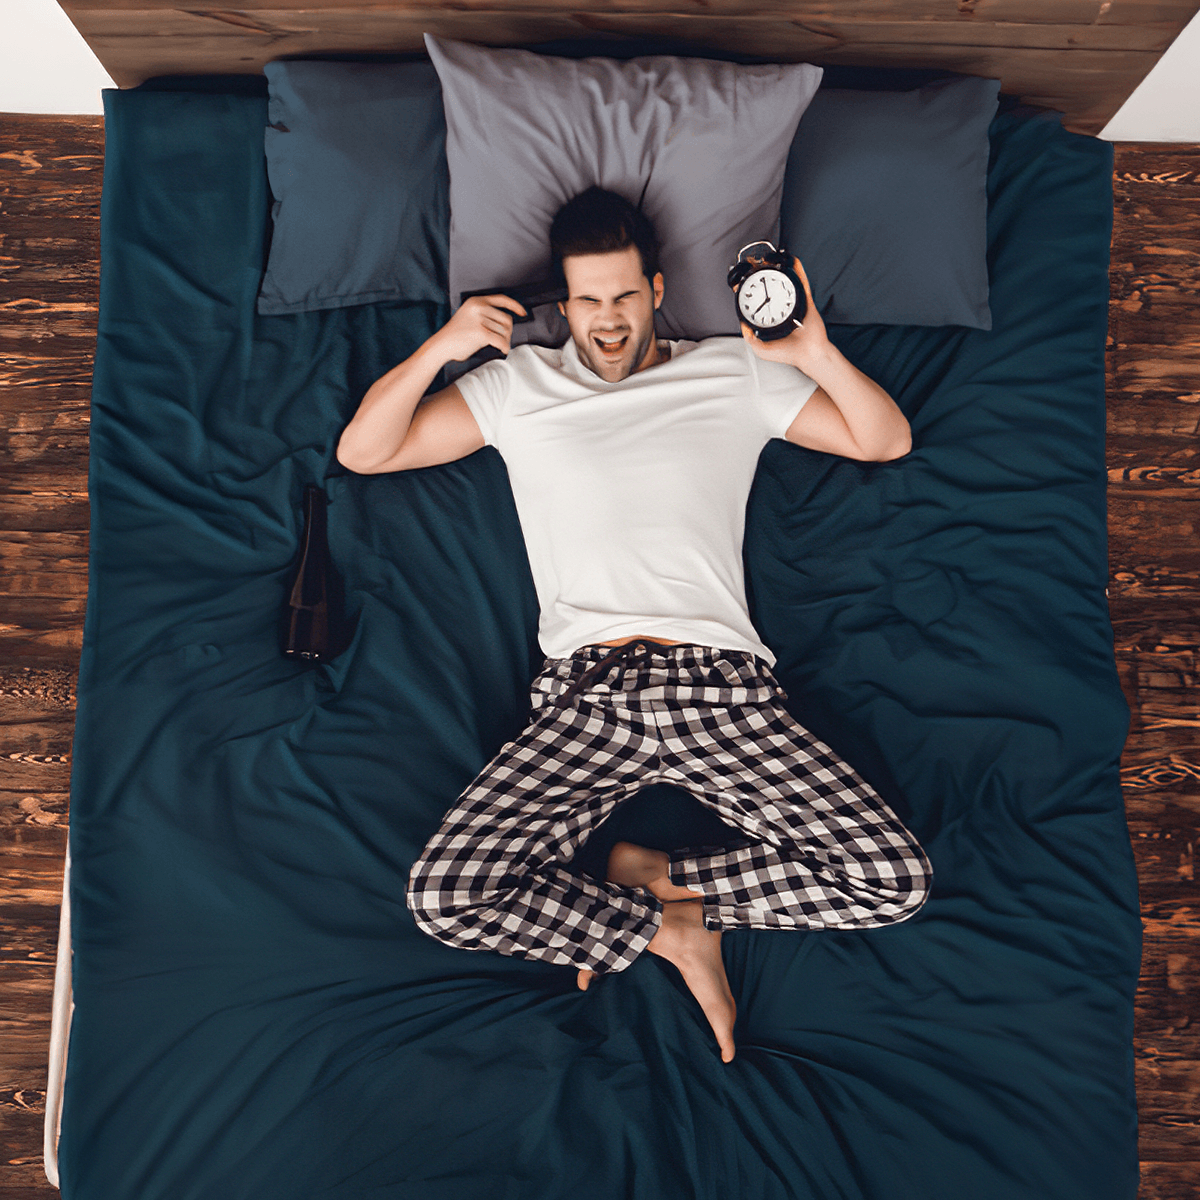 What to Wear to Bed for a Great Night's Sleep?